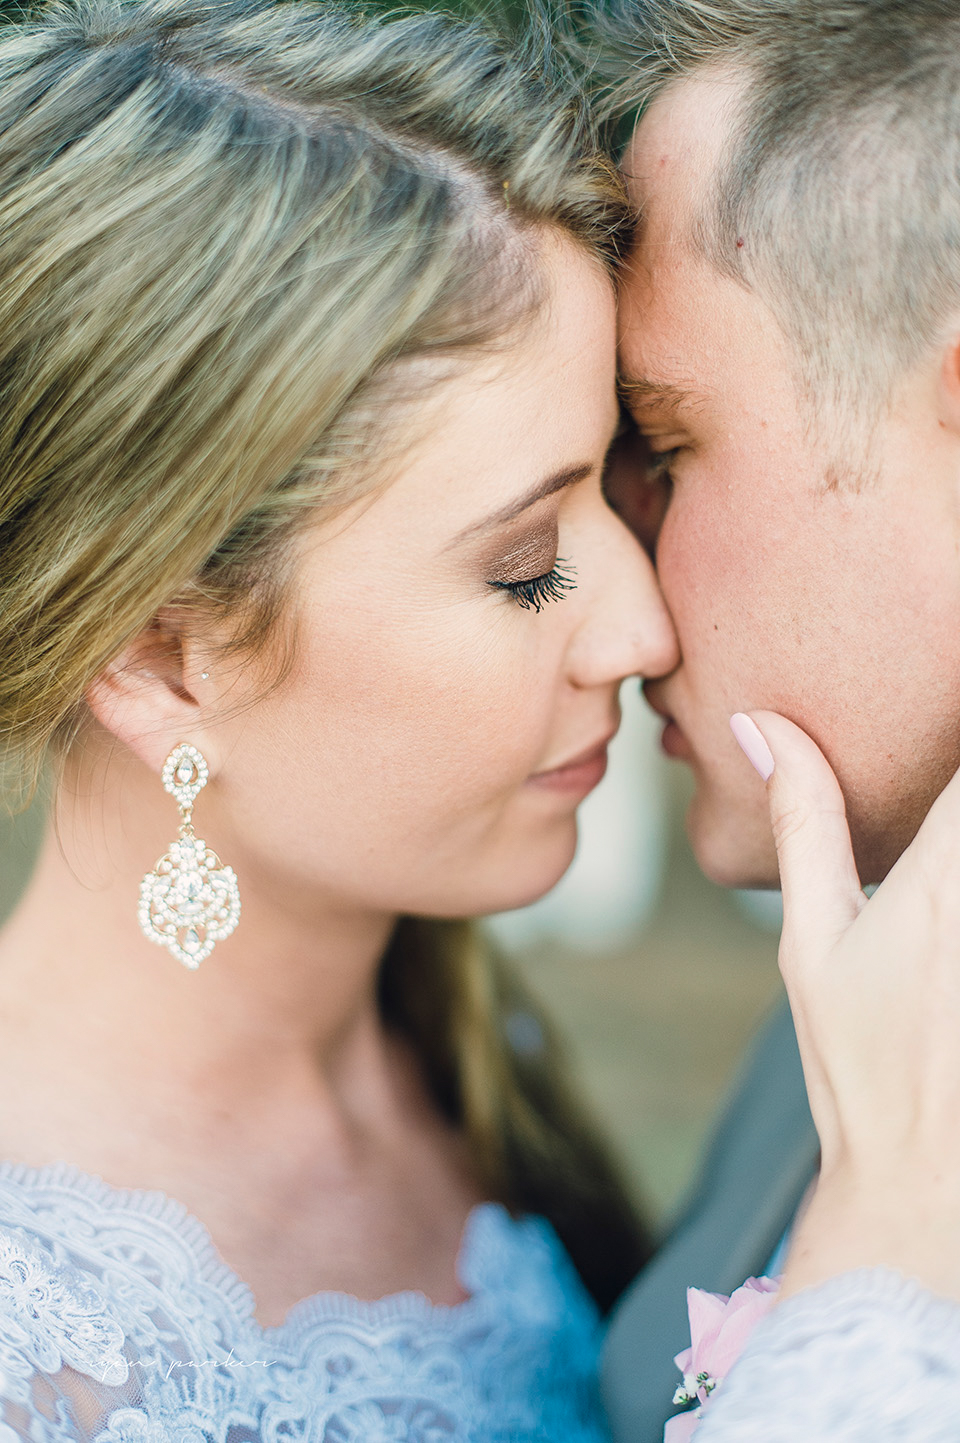 RYAN PARKER_FINE ART WEDDING PHOTOGRAPHER_WEDDING_FLORENCE GUEST FARM_M&S-8309.jpg